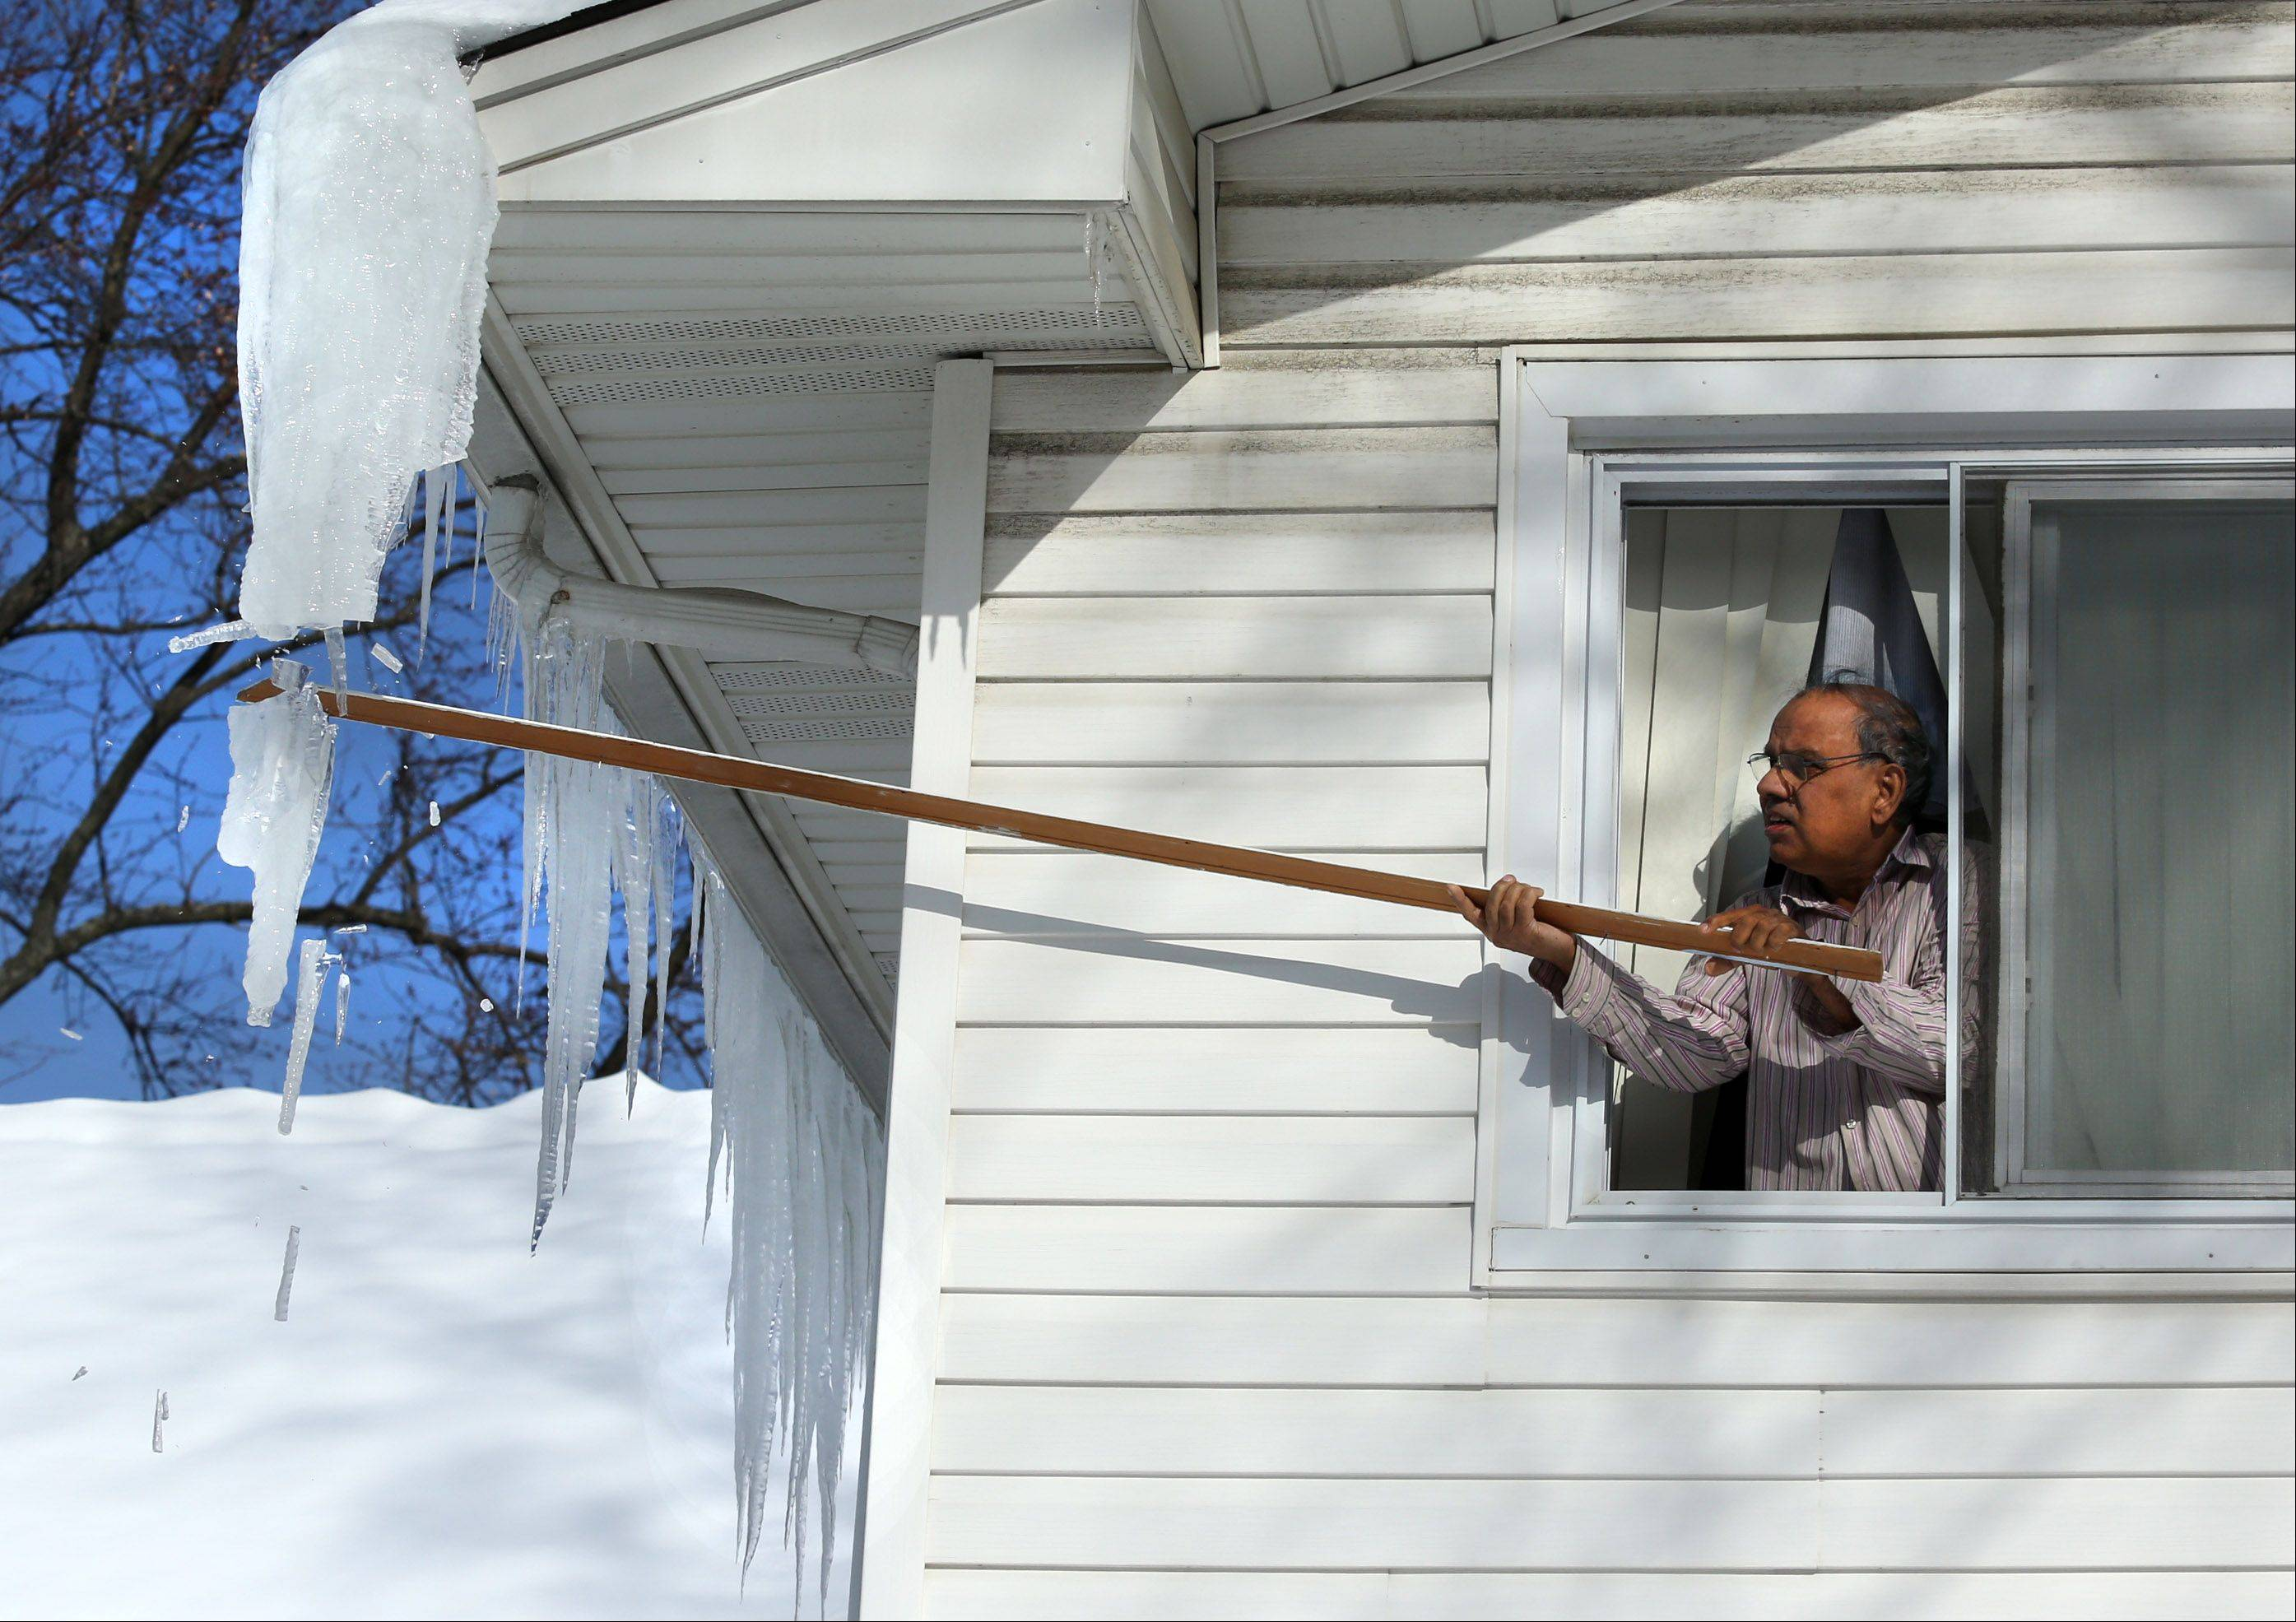 George LeClaire/gleclaire@dailyherald.comLeaning out a second floor window, Mohammad Mohyuddin uses a stick to knock icicles off of his home's roof in Rolling Meadows on Wednesday.